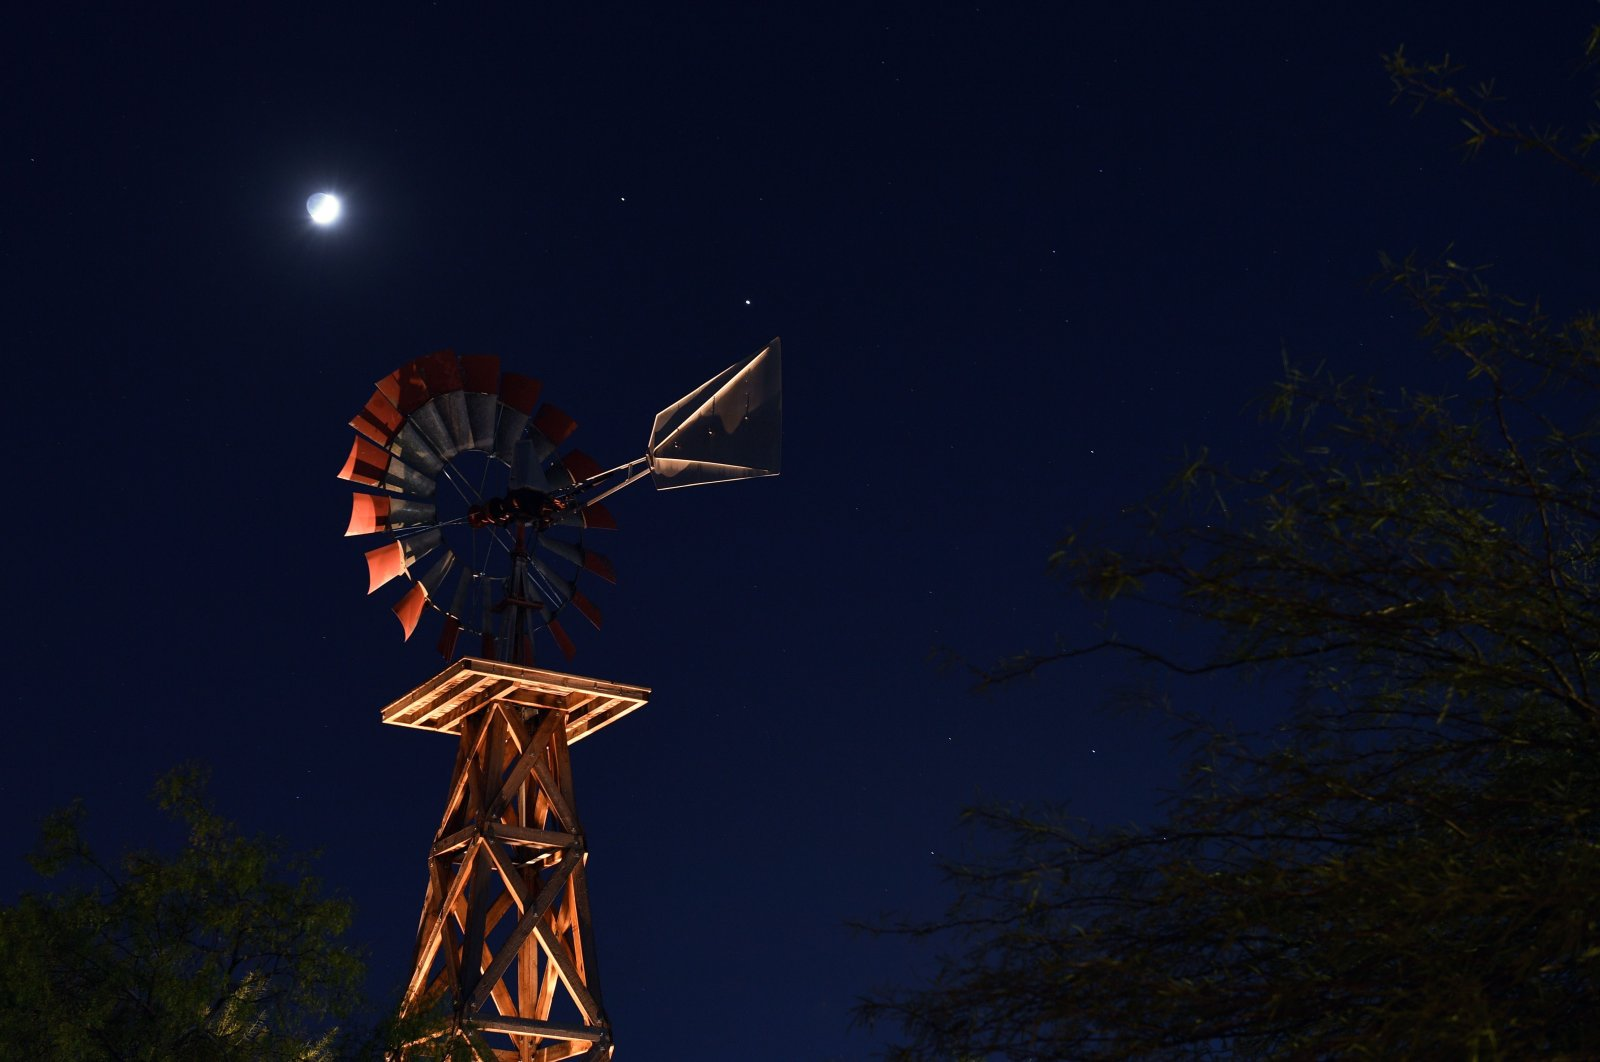 (L-R) The waxing crescent moon and the planets Saturn and Jupiter are shown above a windmill at Western Trails Park on November 19, 2020 in Las Vegas, Nevada. (AFP Photo)